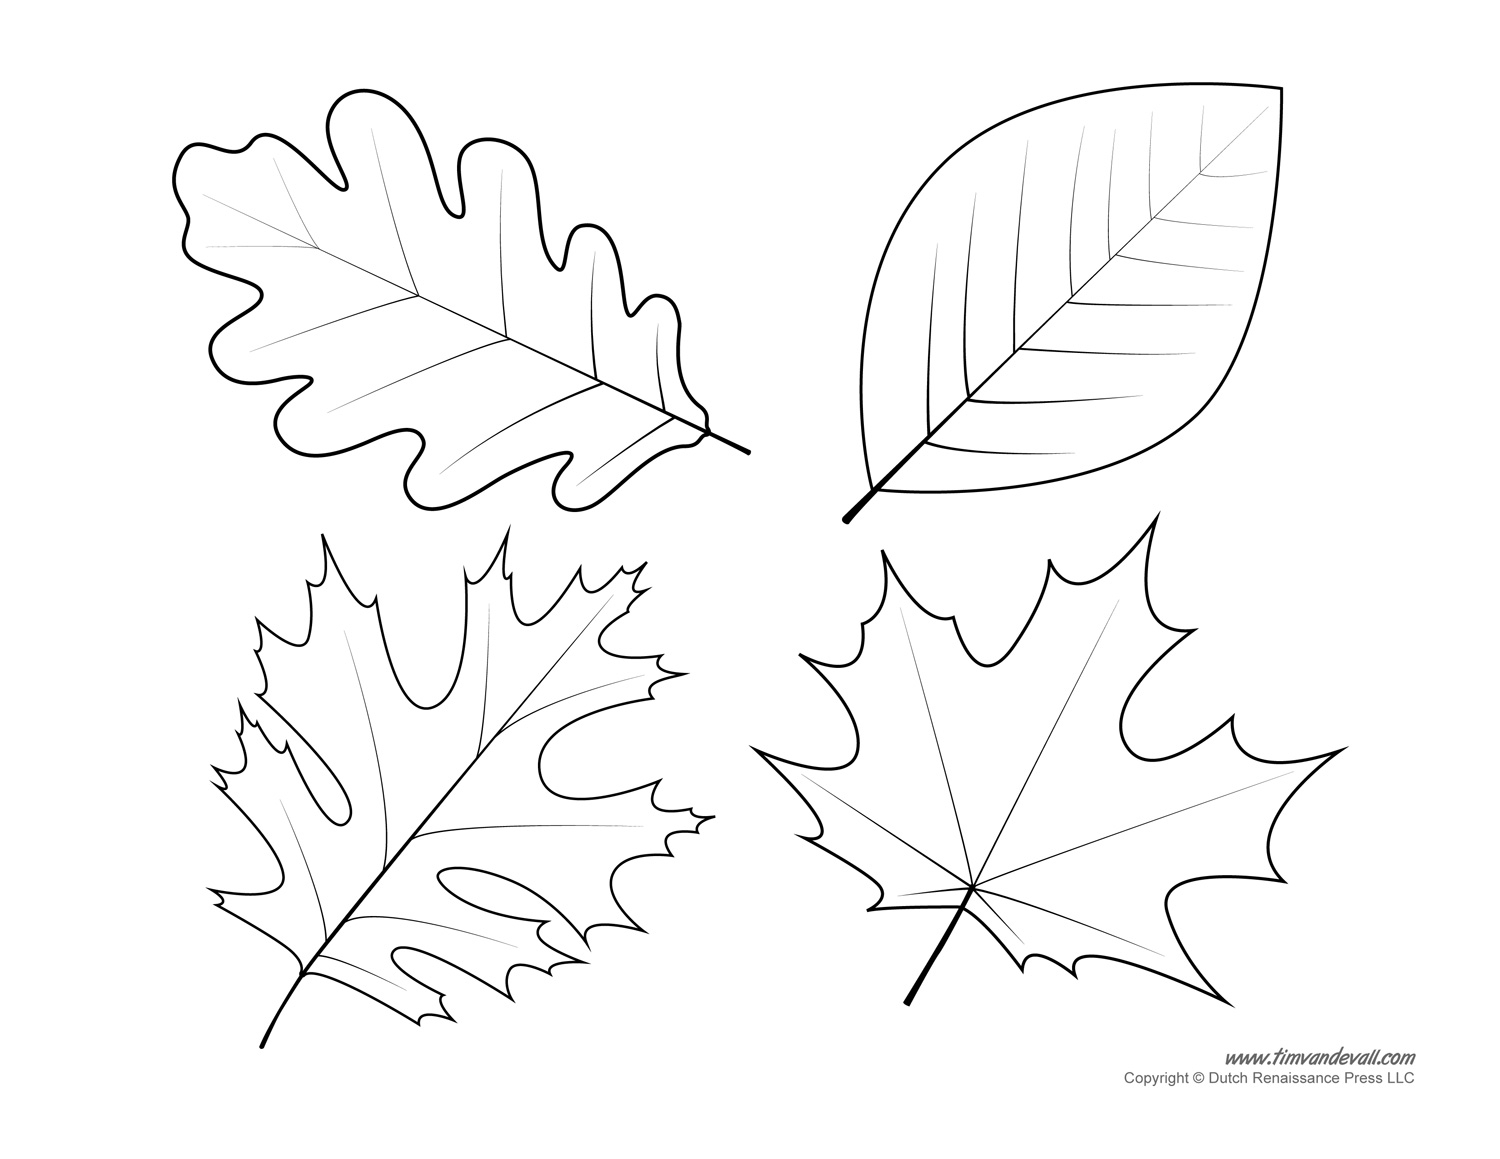 1500x1159 Hurry Leaf Stencils Printable Oak Template Coloring Page Image